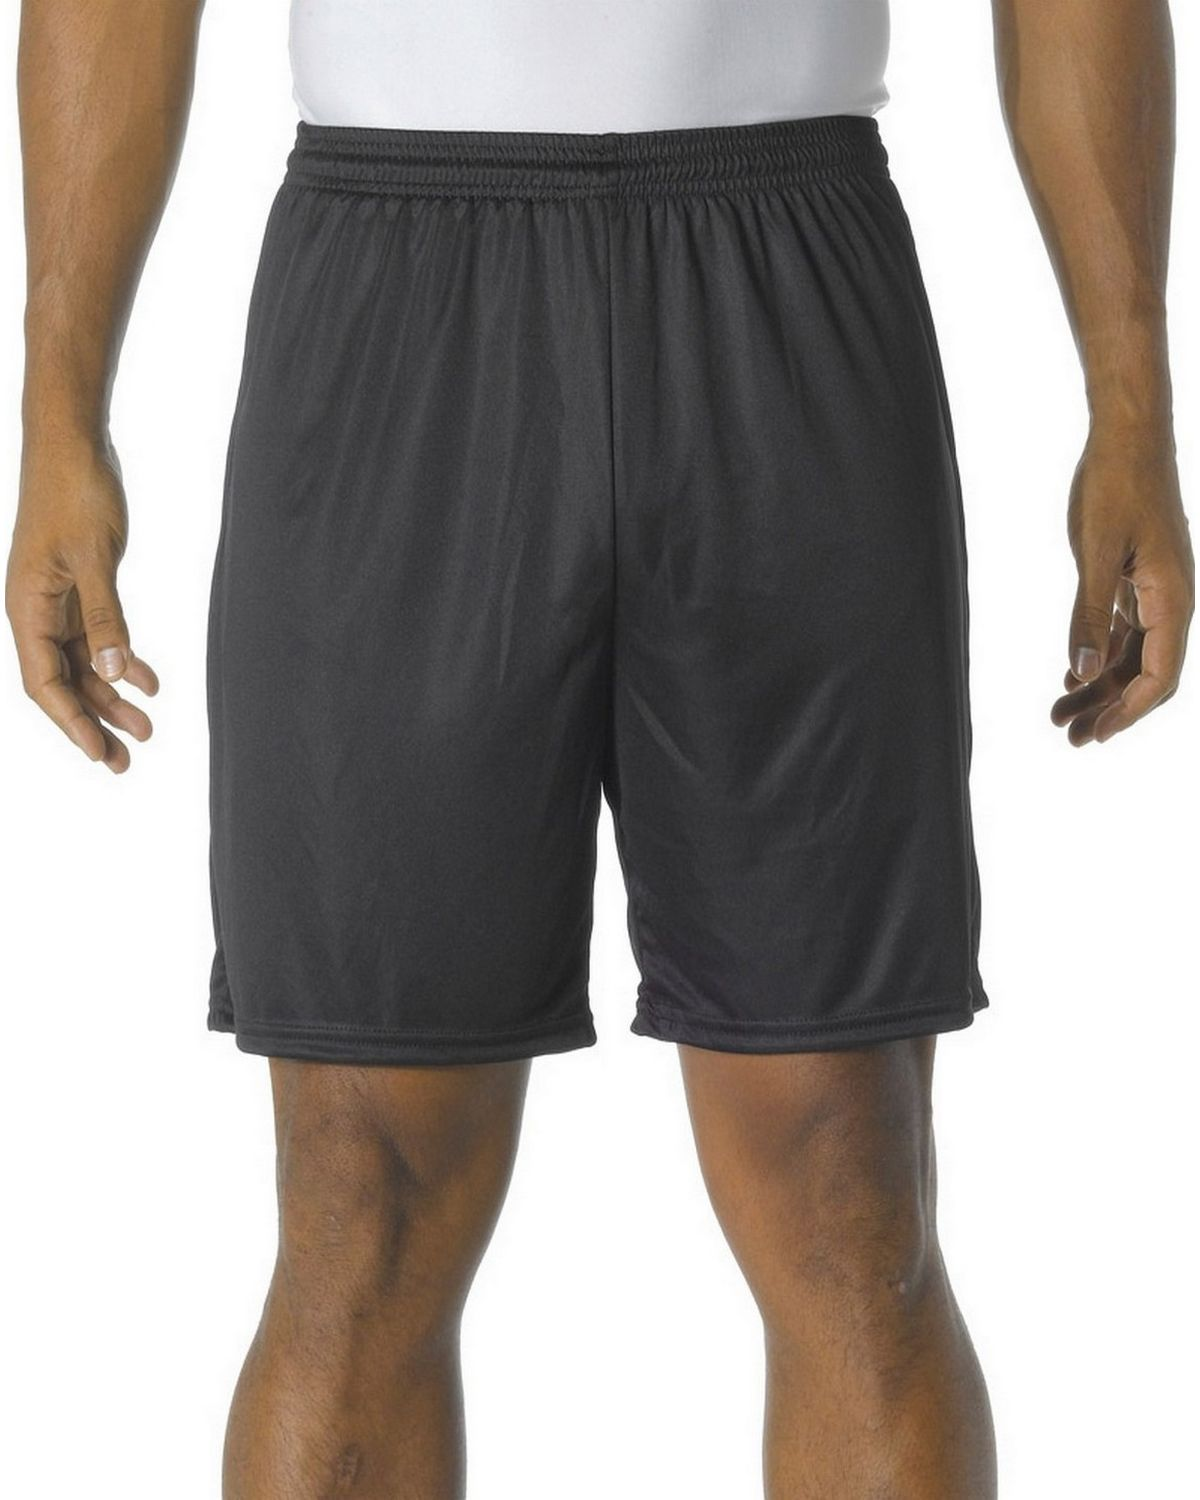 A4 NB5244 Youth Cooling Performance Short - Black - XL NB5244